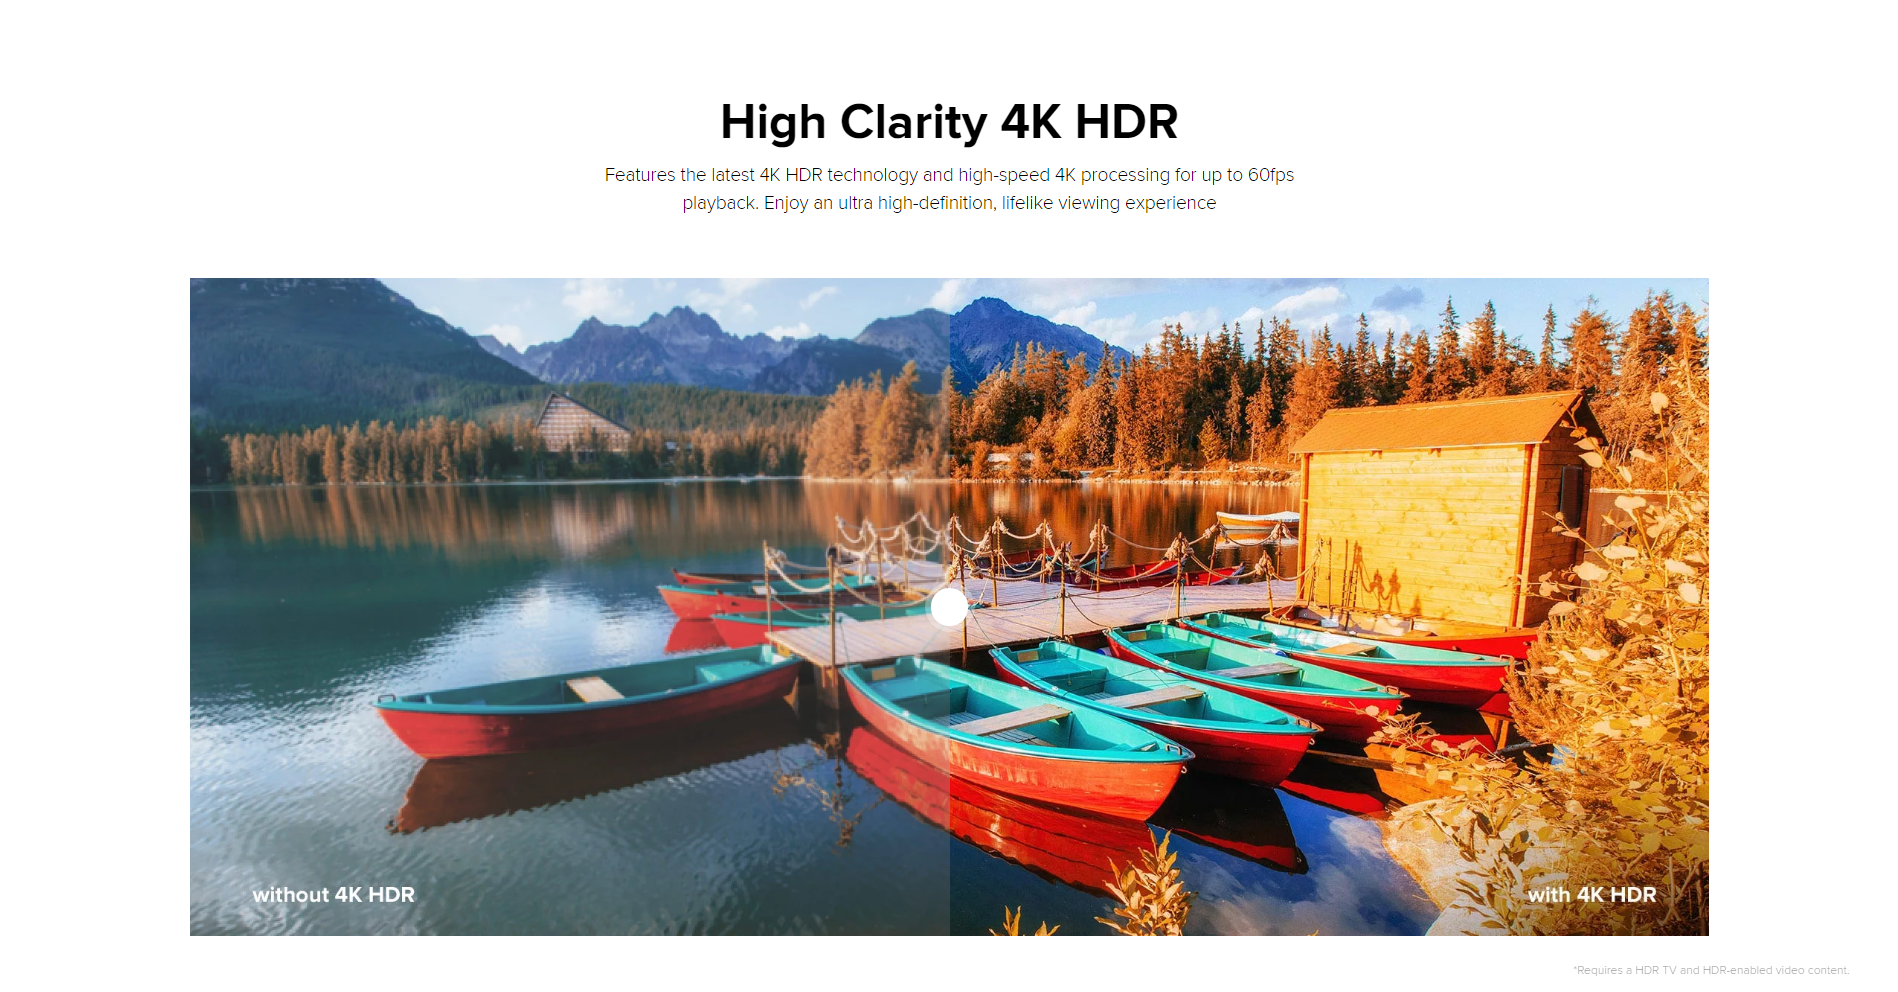 Xiaomi Mi S - High Clarity 4K HDR